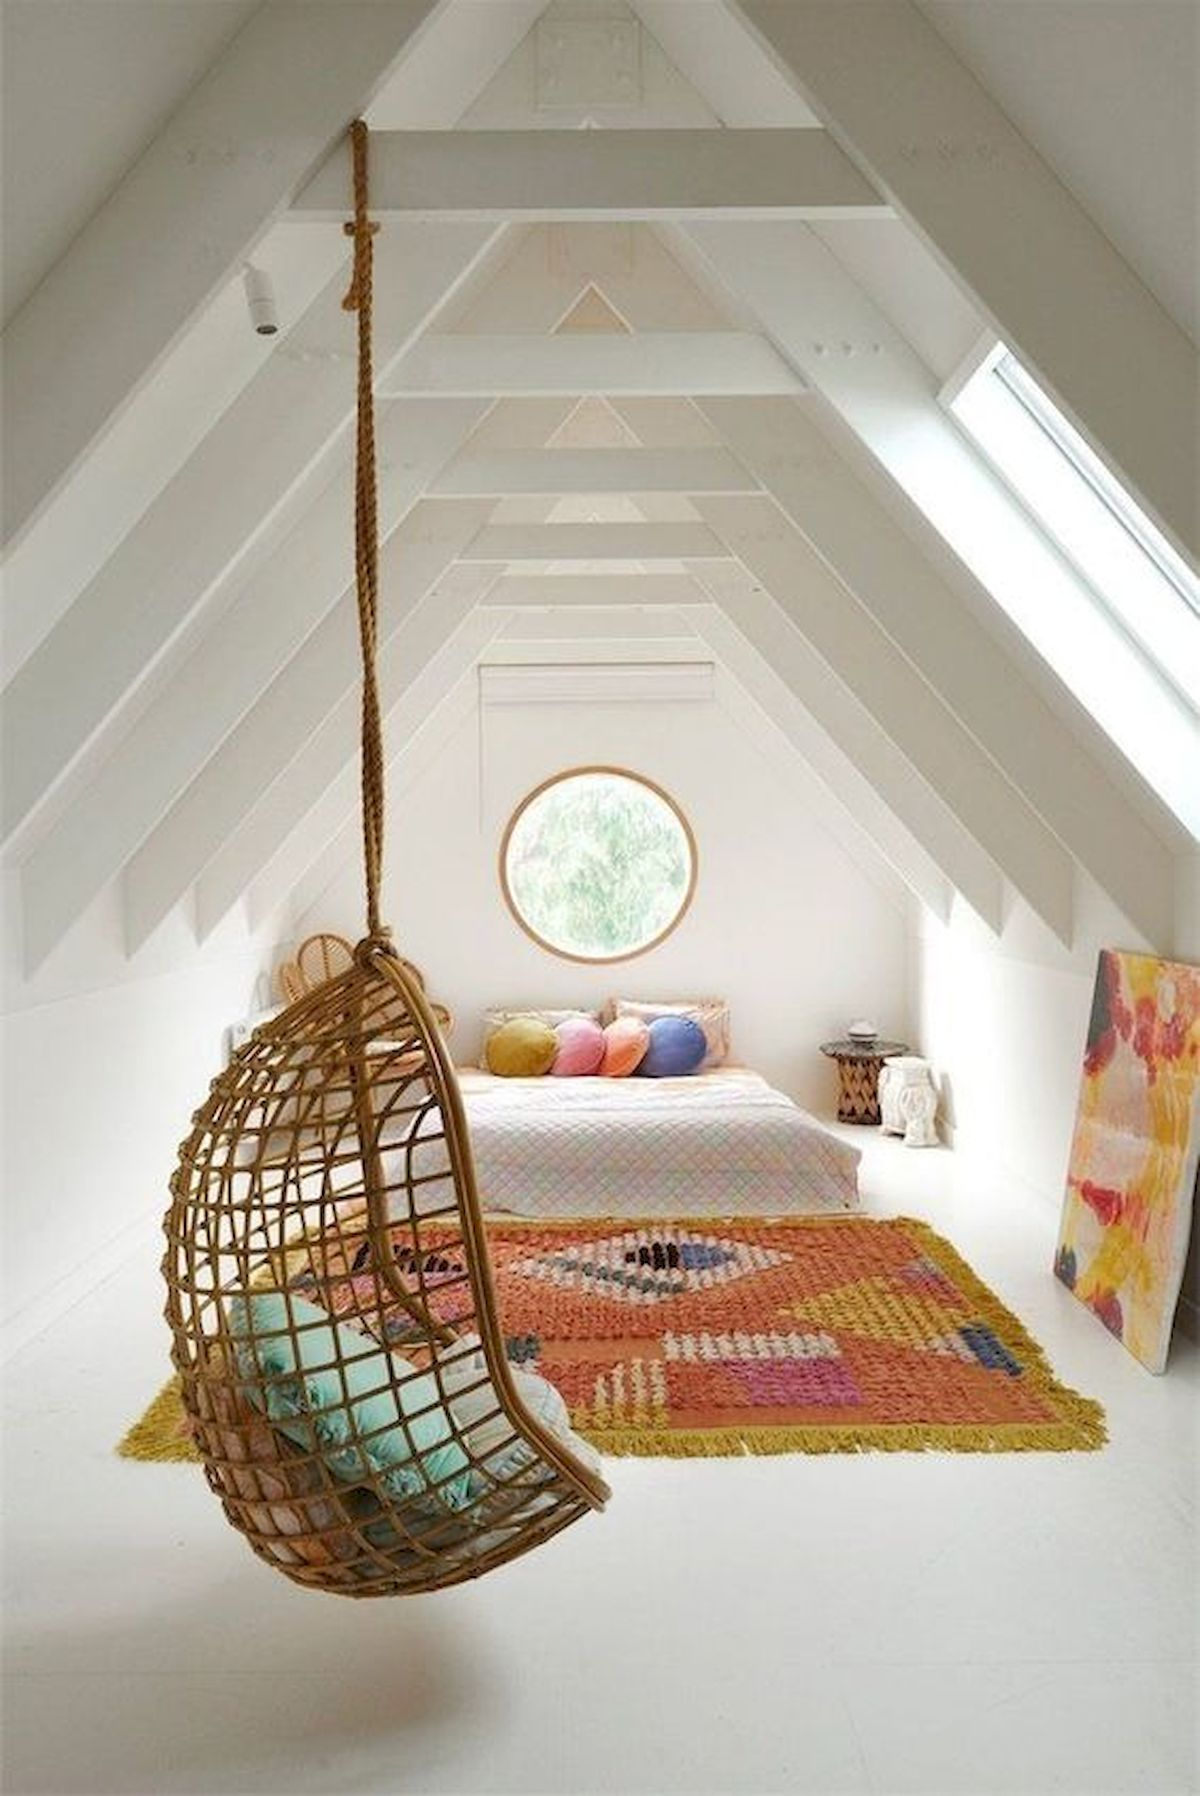 40 Awesome Attic Bedroom Design and Decorating Ideas (20)